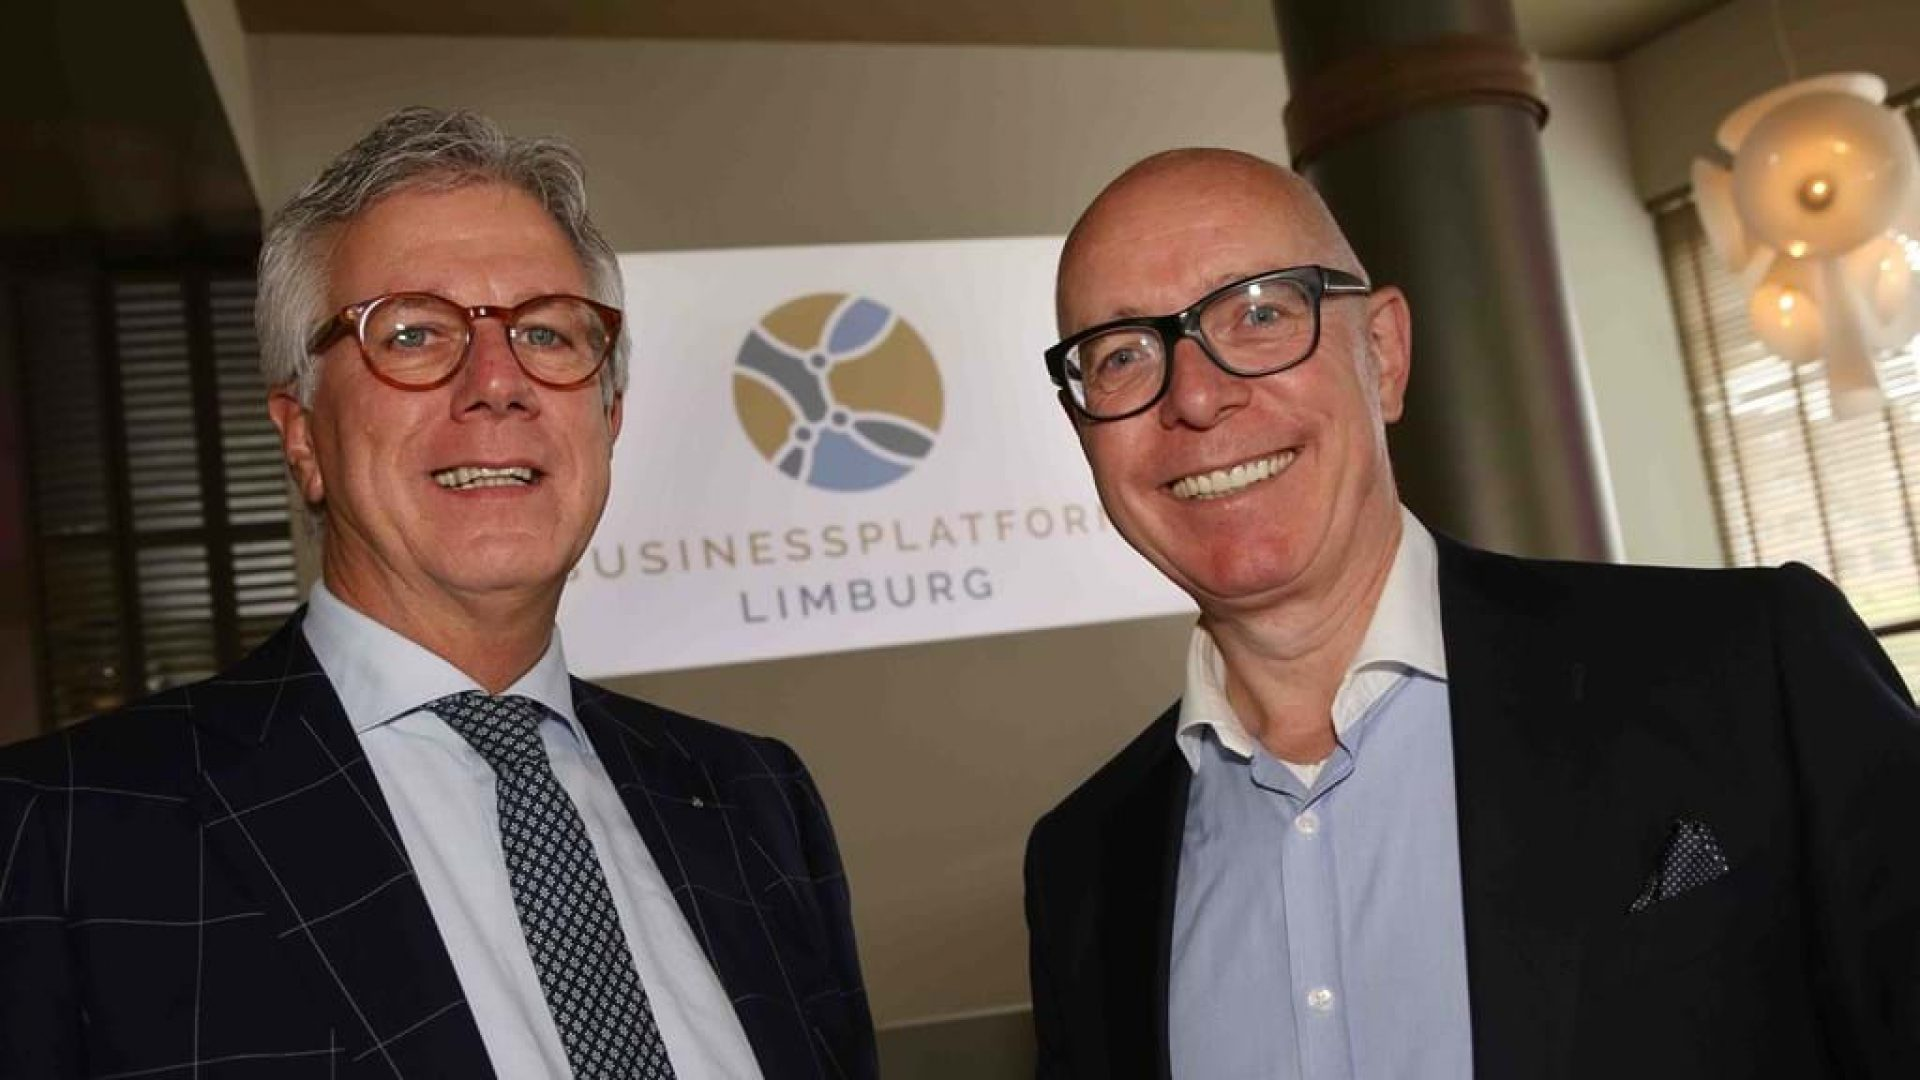 Business Platform Limburg